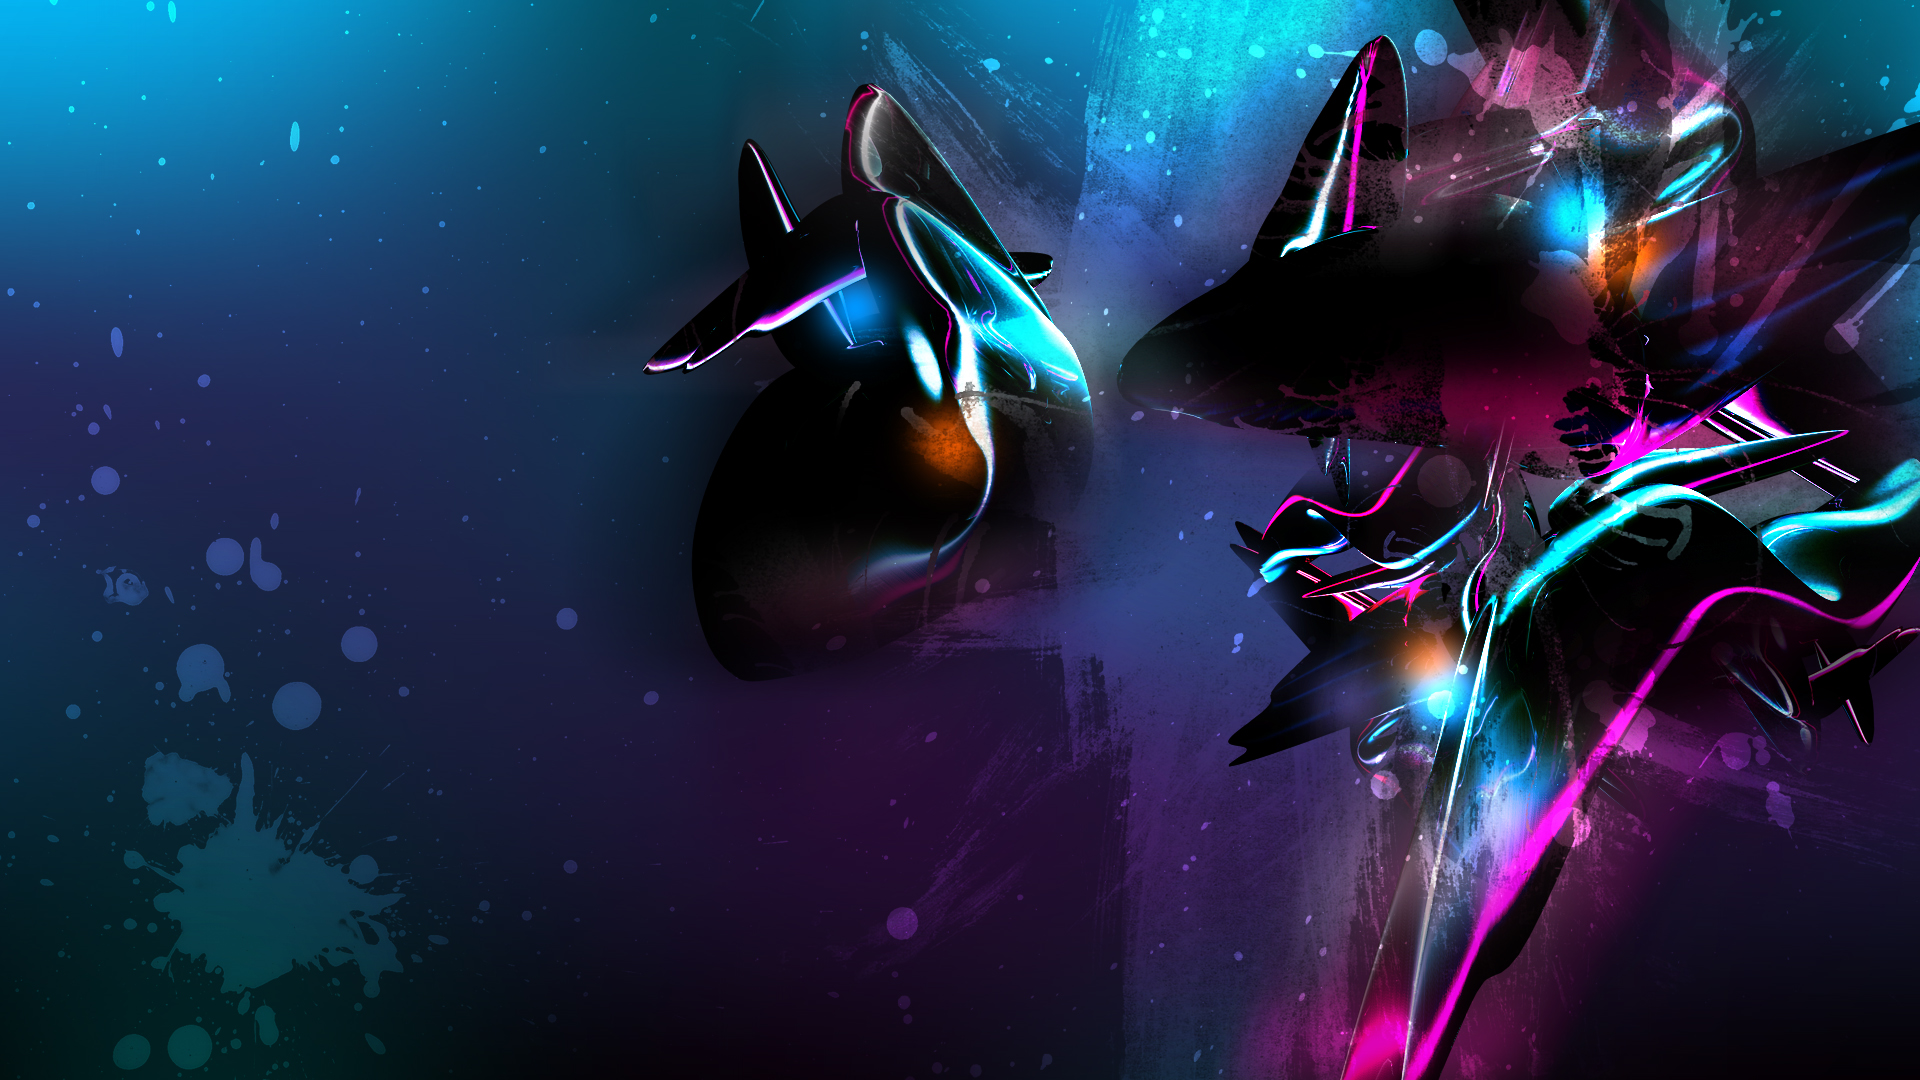 Hd Abstract Anime 720p Wallpaper 1080p 7737 Hd Wallpapers 1920x1080